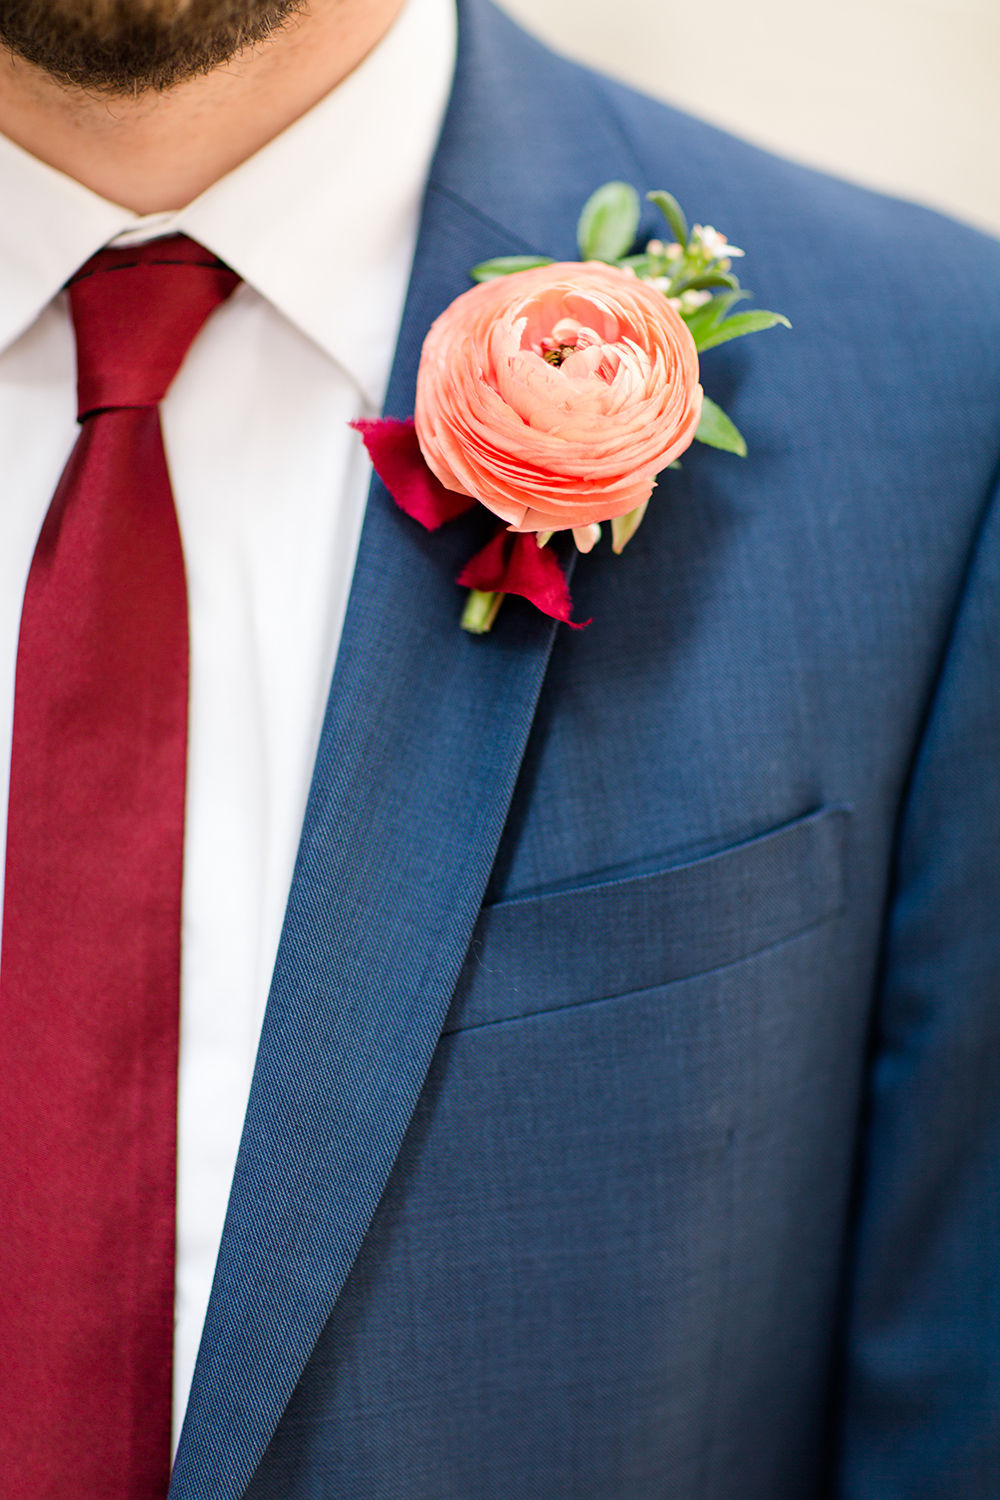 peachy pink boutonnieres - photo by Lauren Lee Photography http://ruffledblog.com/modern-grecian-inspired-wedding-ideas